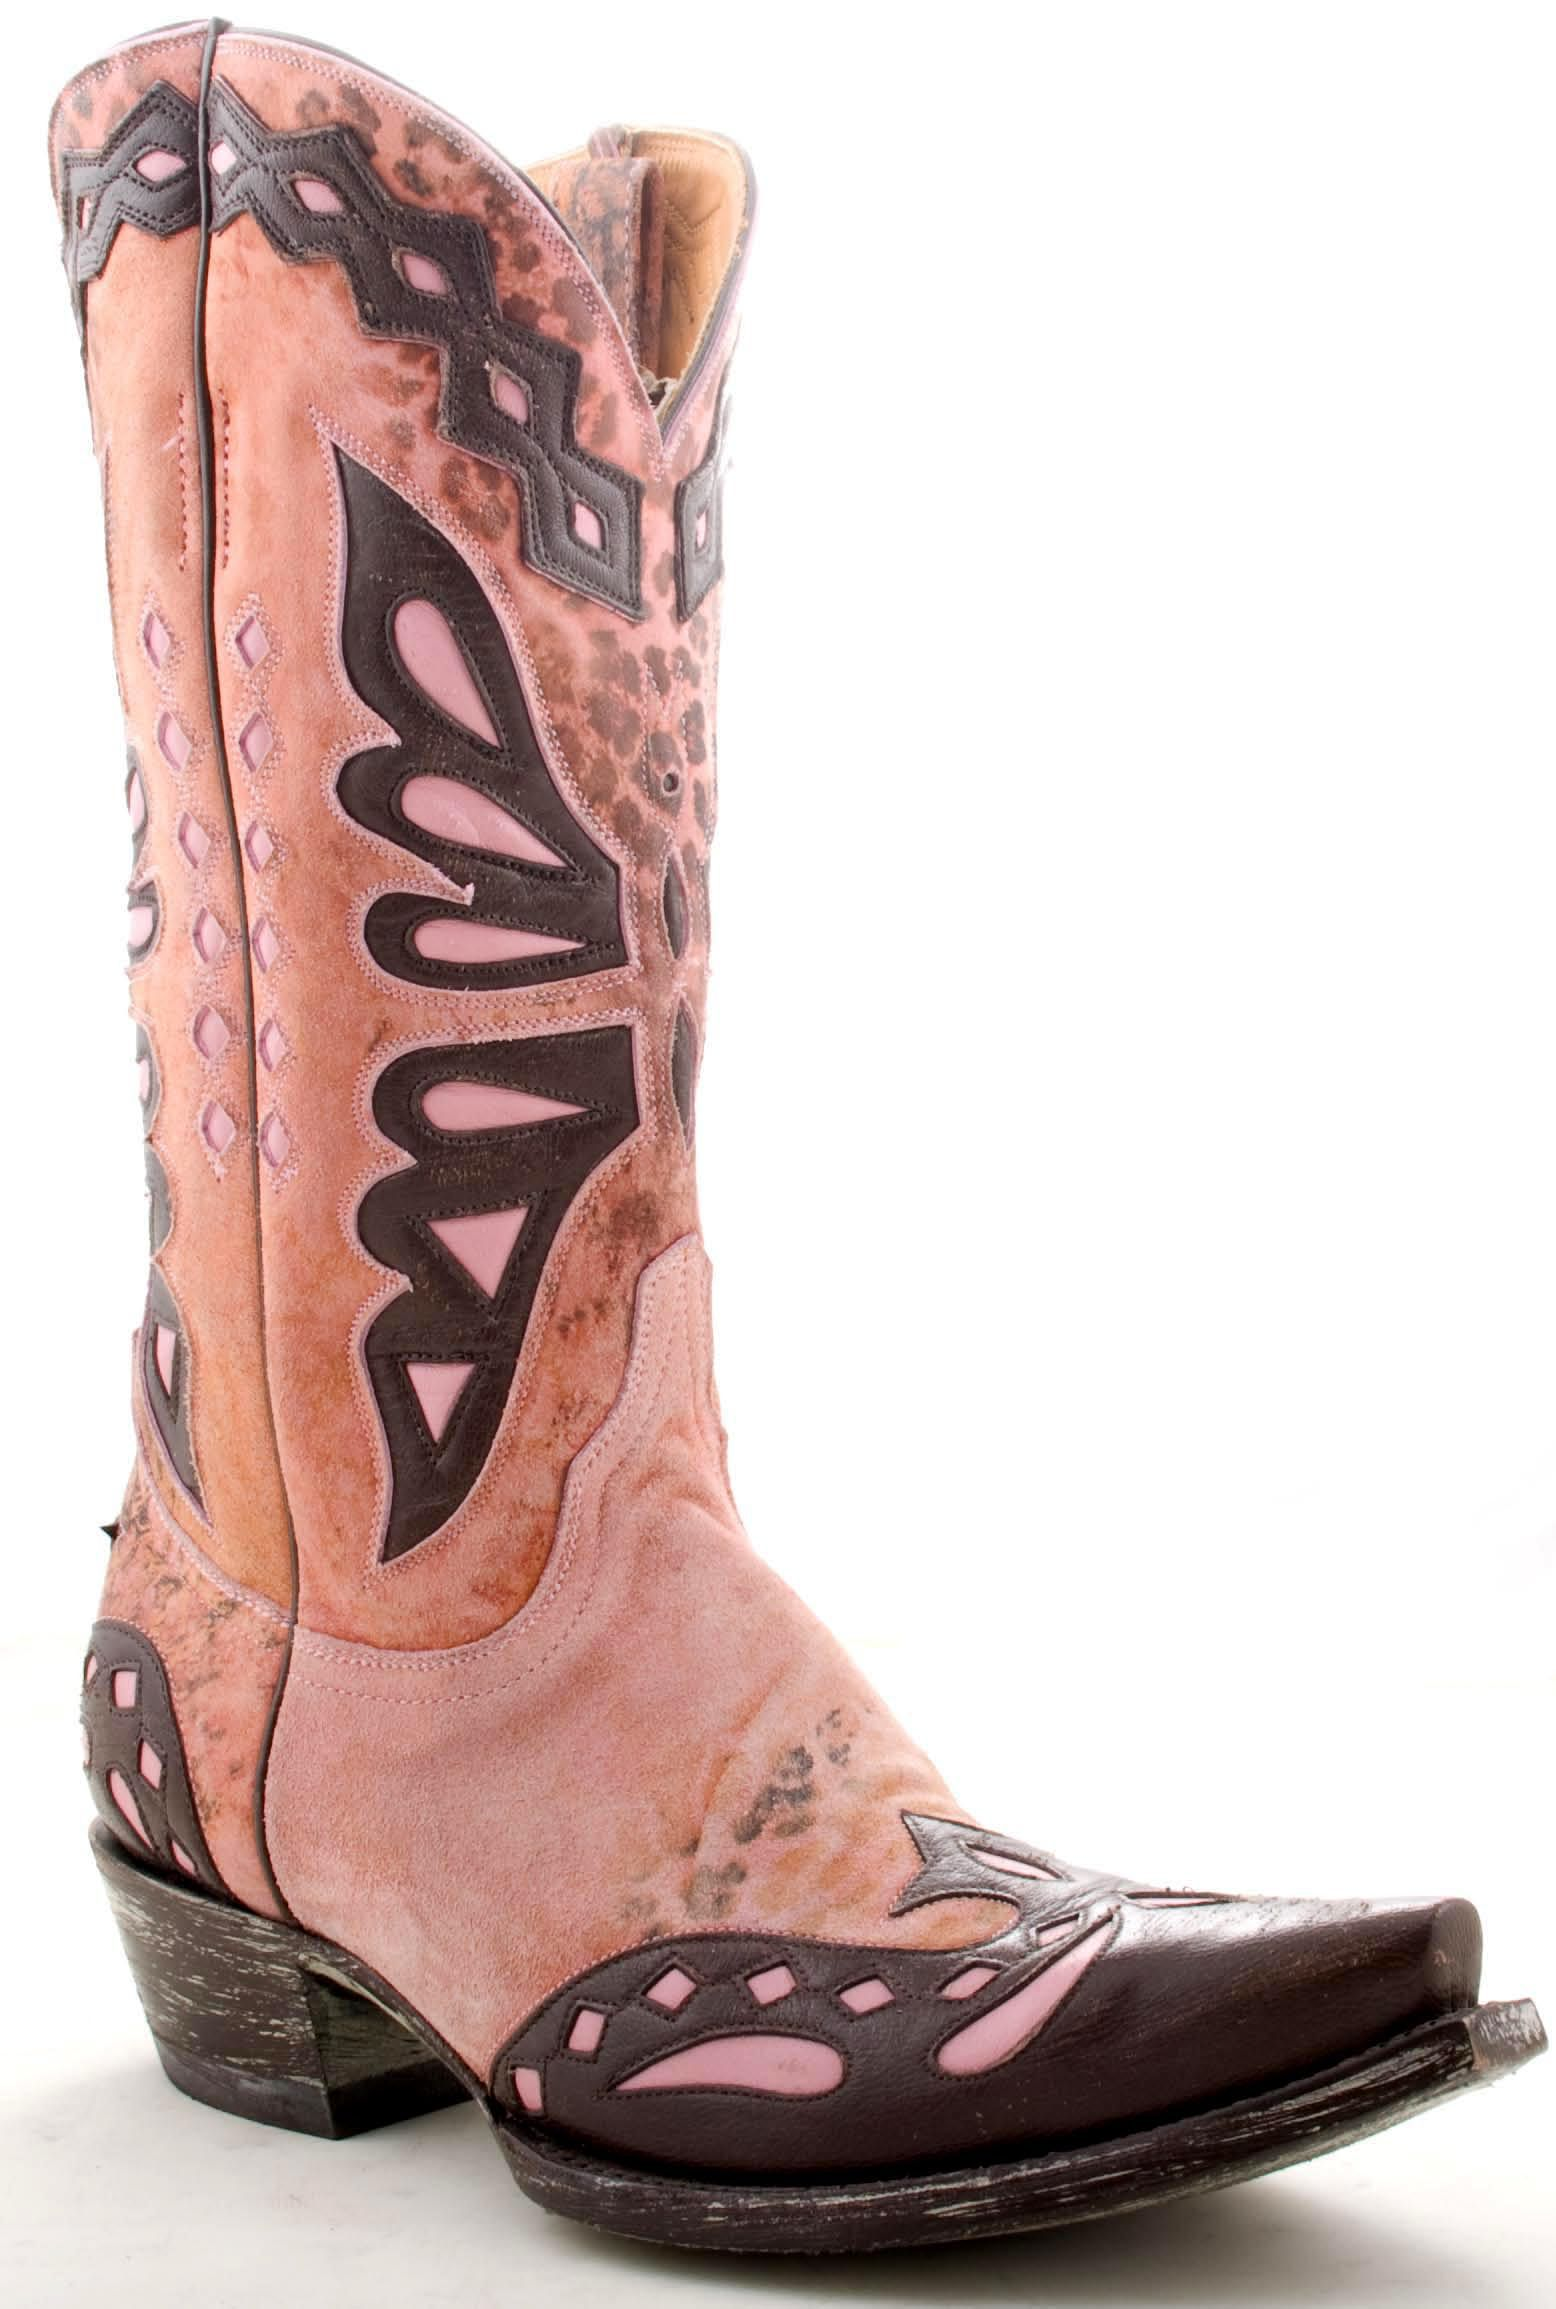 8ac652a7235 Everyone should have a pair of PINK Cowboy Boots :) | NSVL A&E FAV ...